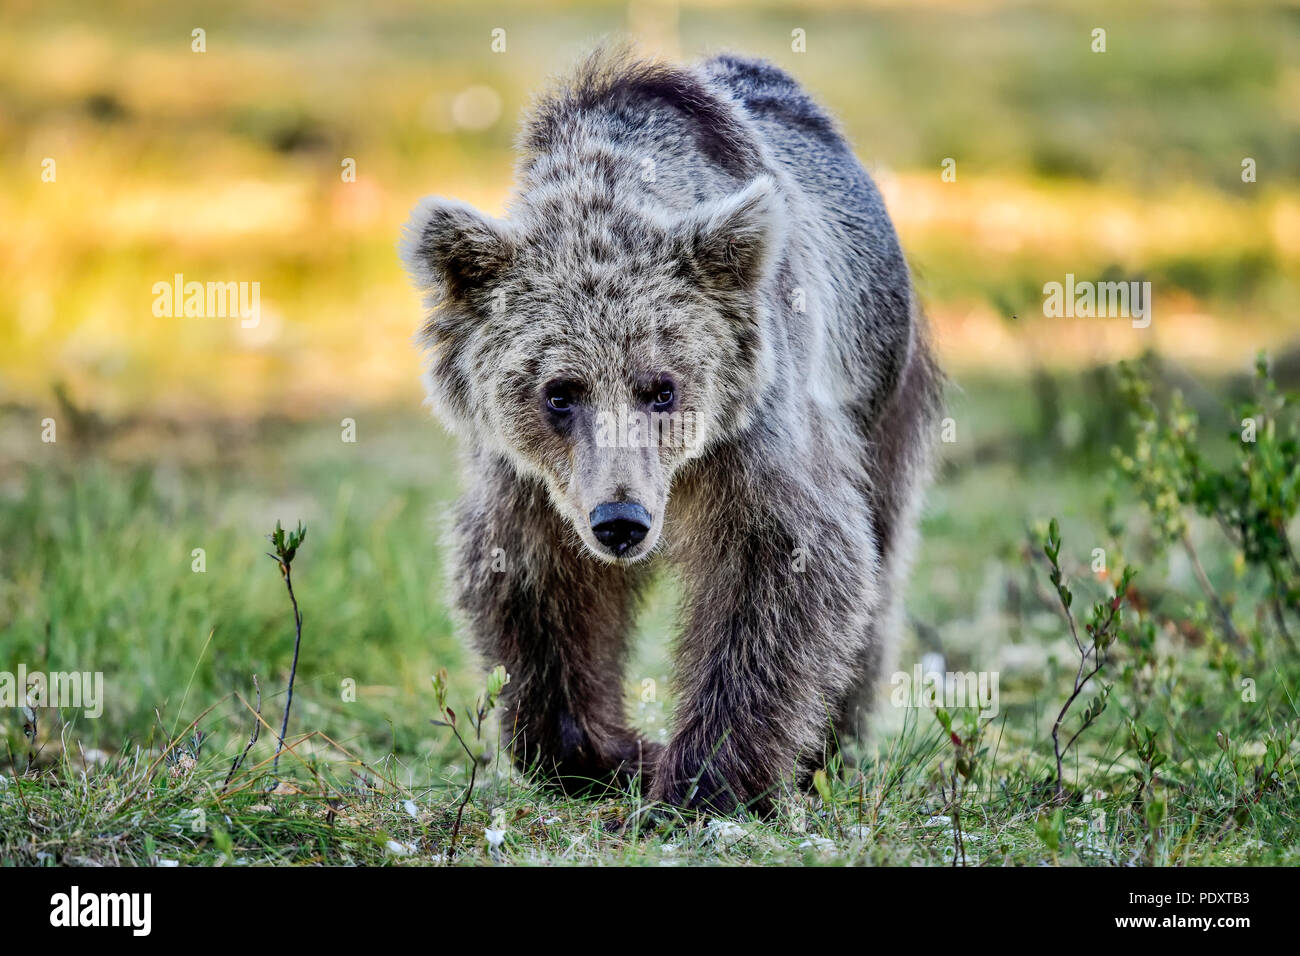 Brown bear is wandering around the swamp. - Stock Image